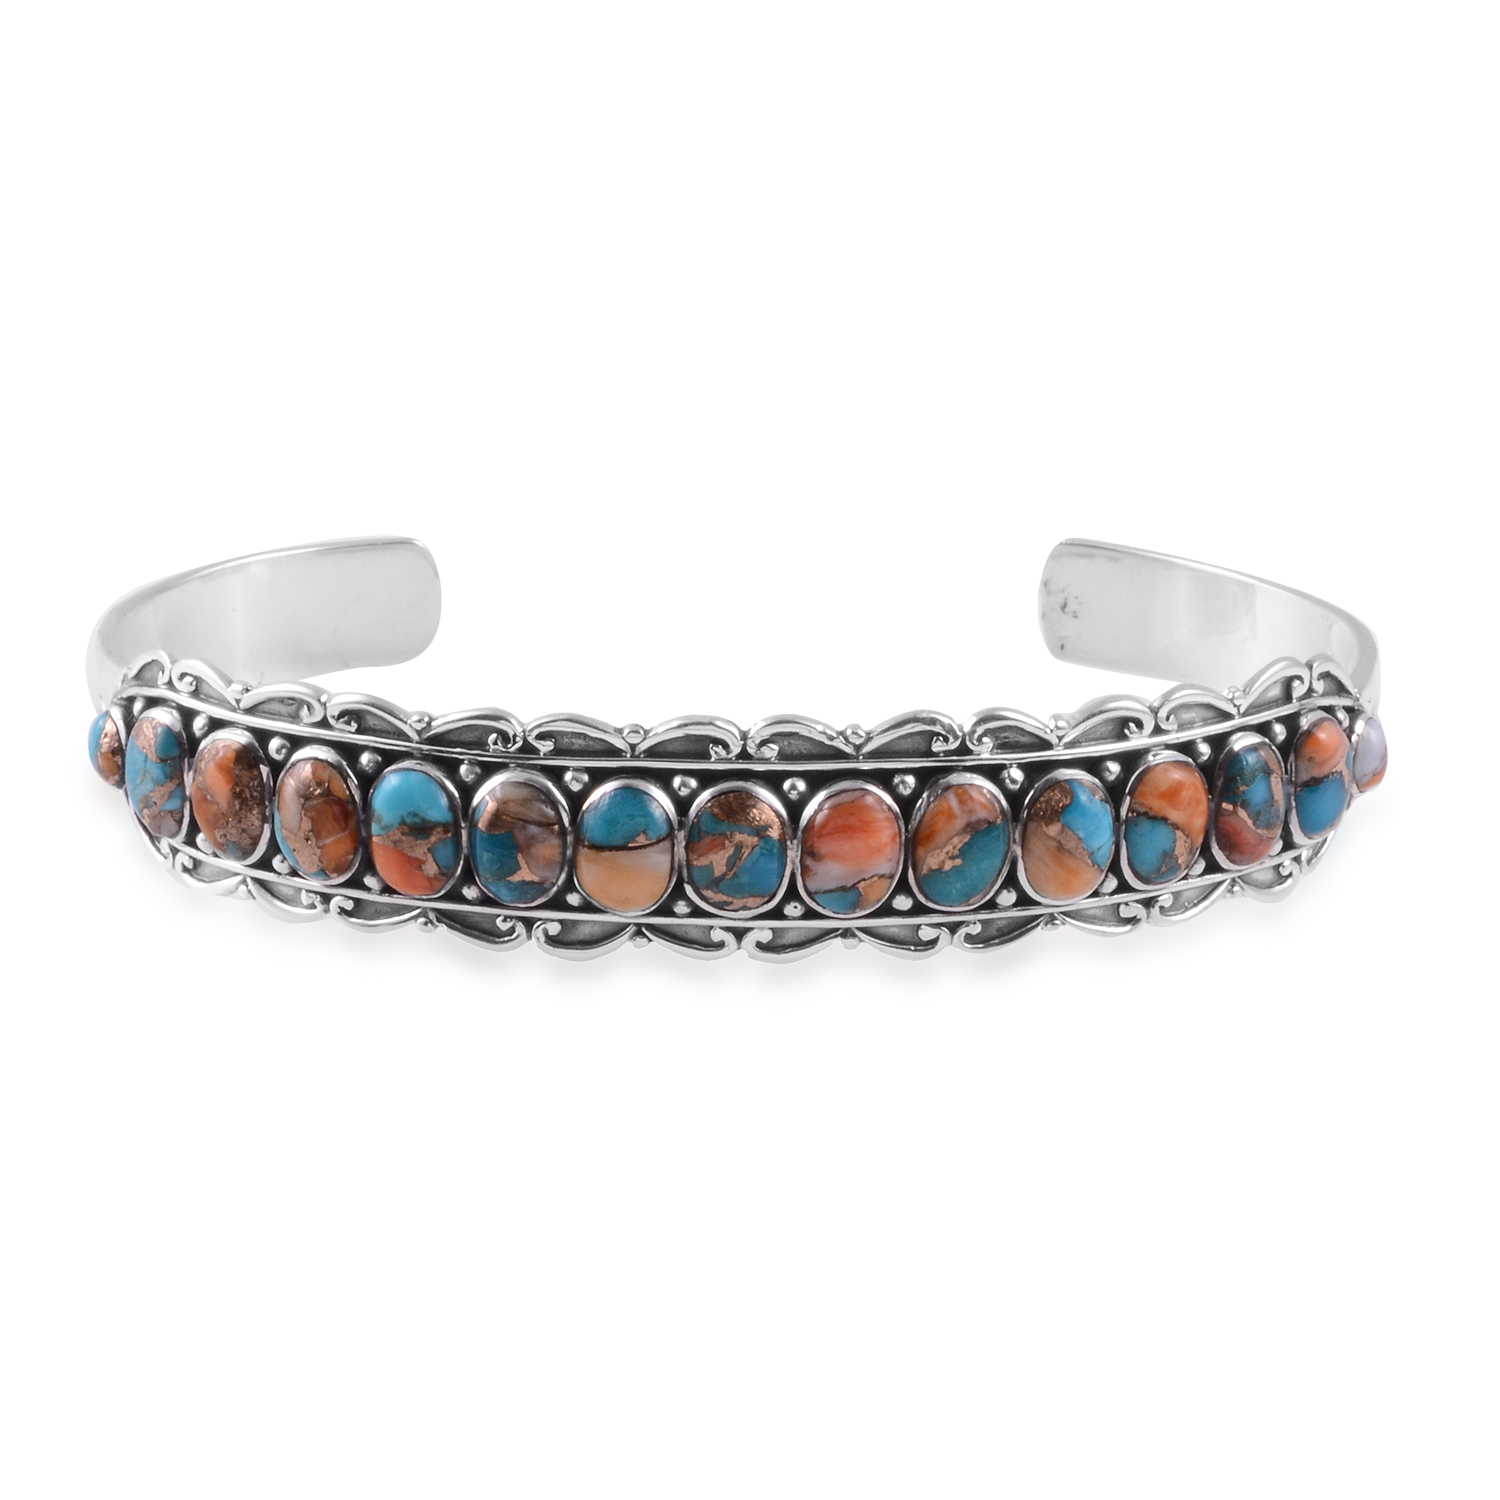 Santa Fe Style Spiny Turquoise Cuff Bracelet in Sterling Silver (7.00 In) 6.00 ctw